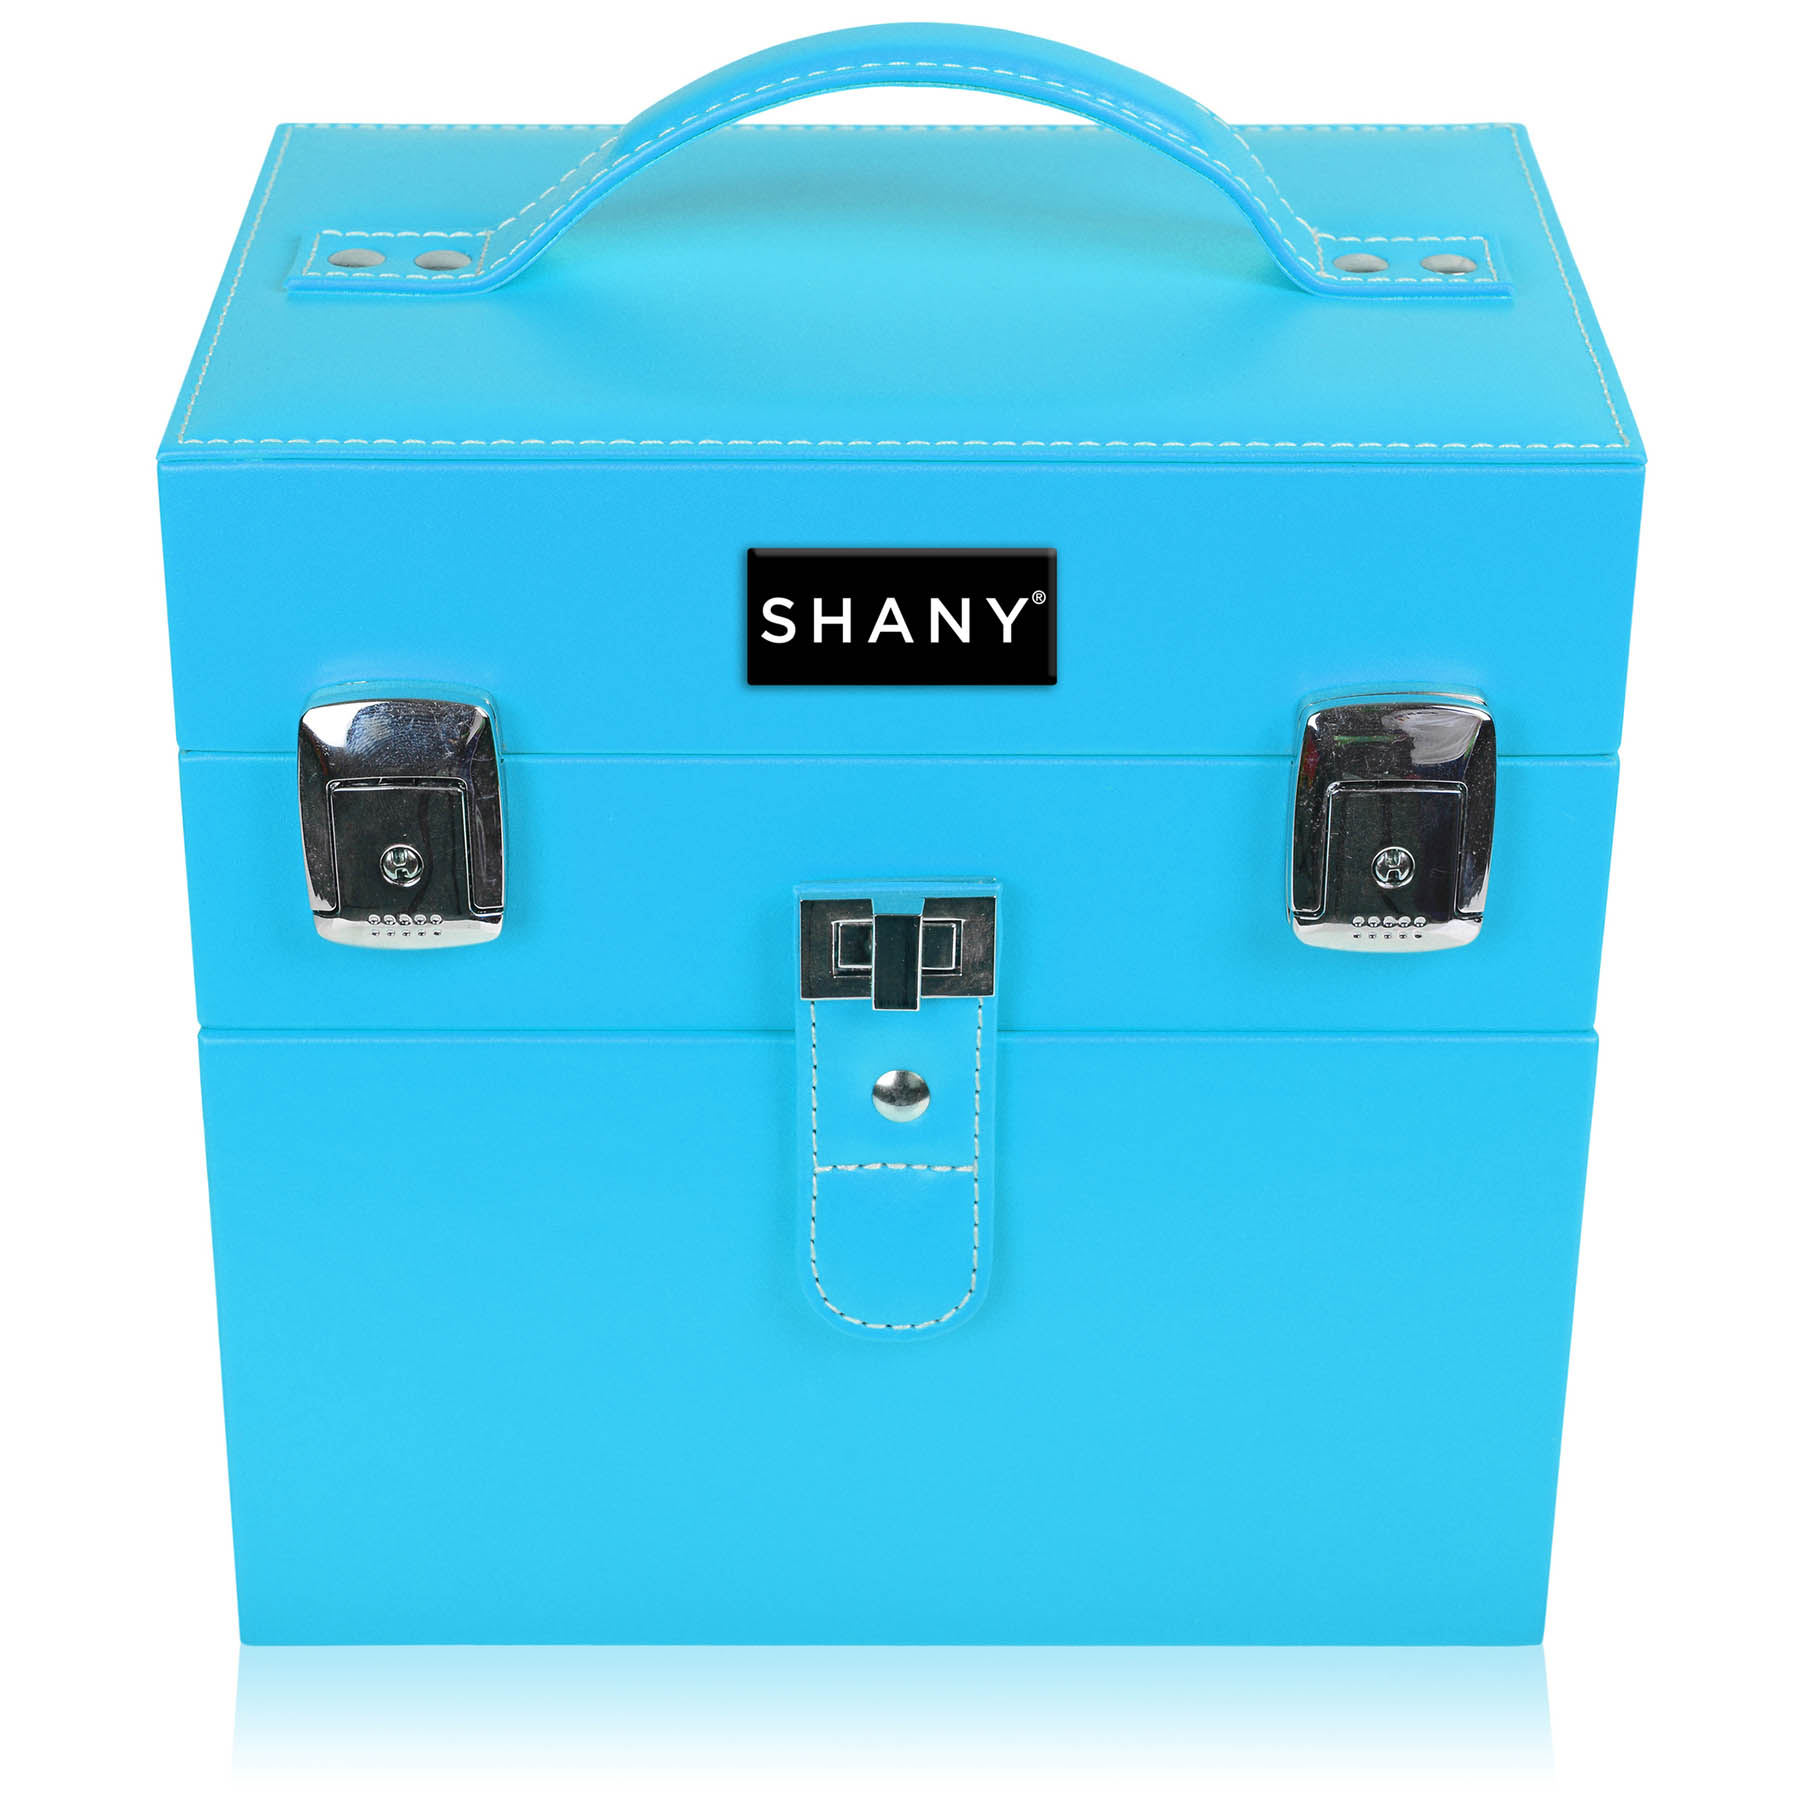 SHANY-Color-Matters-Nail-Accessories-Organizer-and-Makeup-Train-Case miniature 63